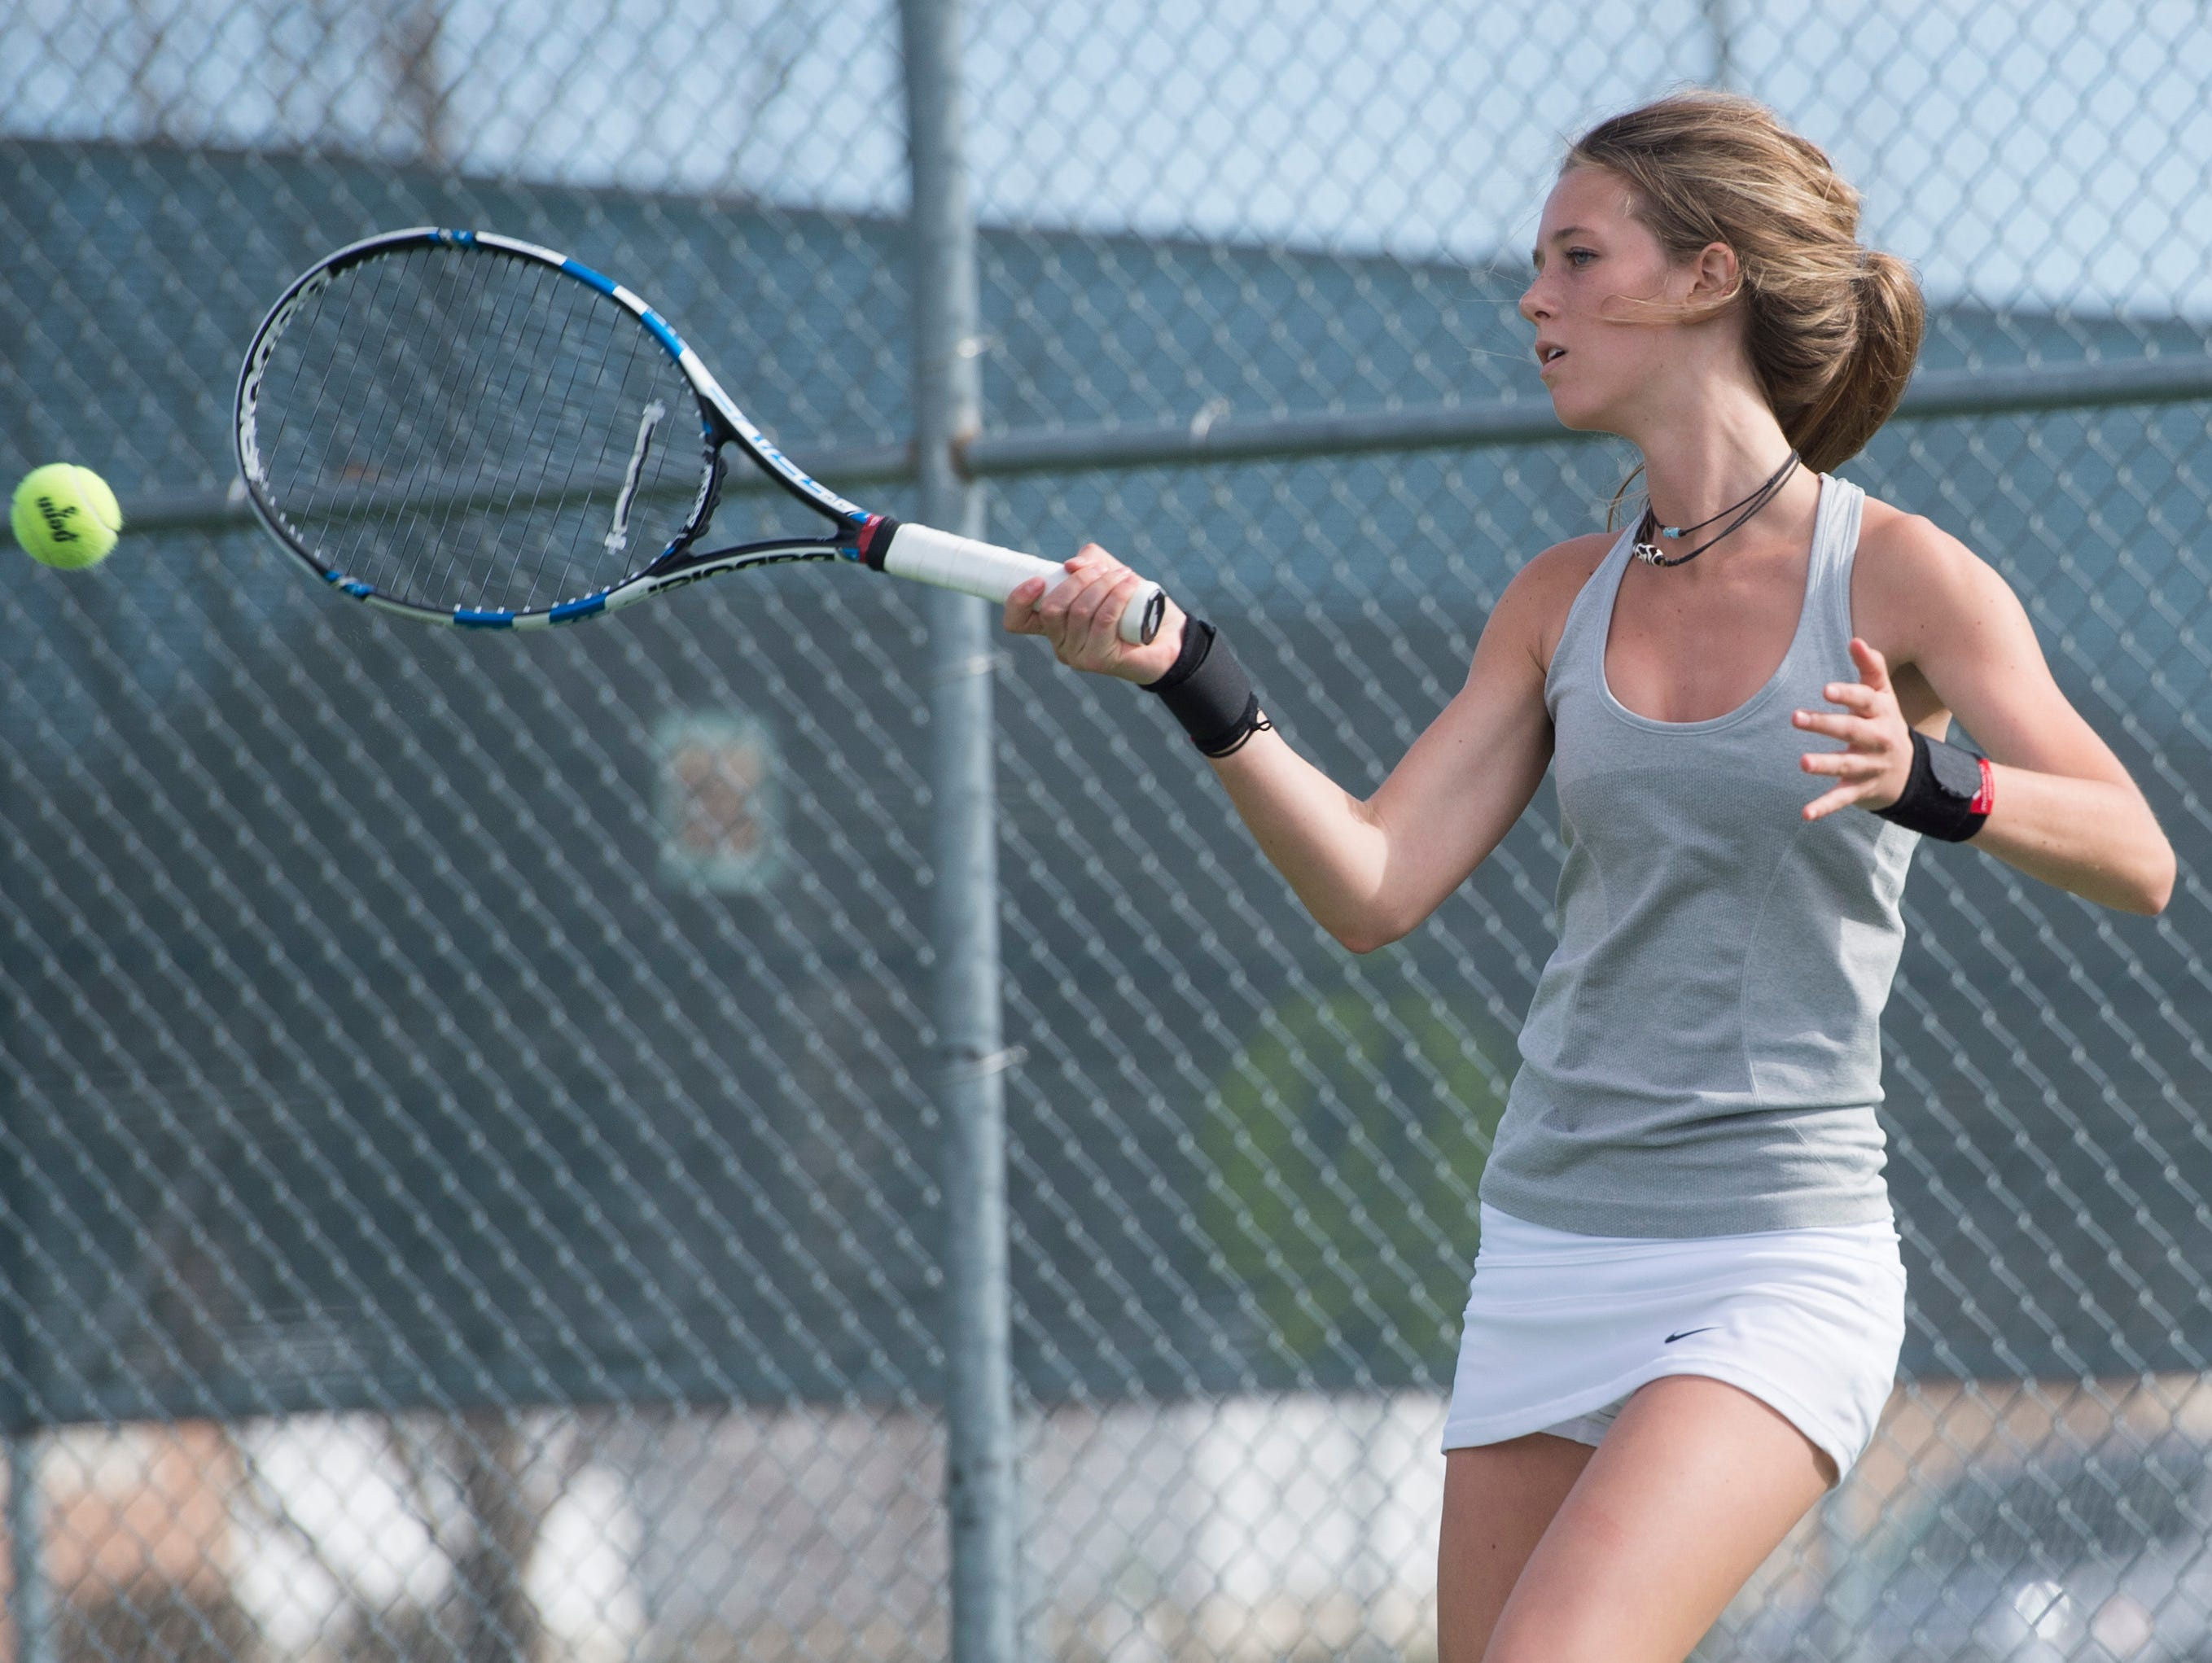 Bailey Koronich of Fossil Ridge High School returns the ball to a Poudre tennis player during a match Wednesday, April 6, 2016.